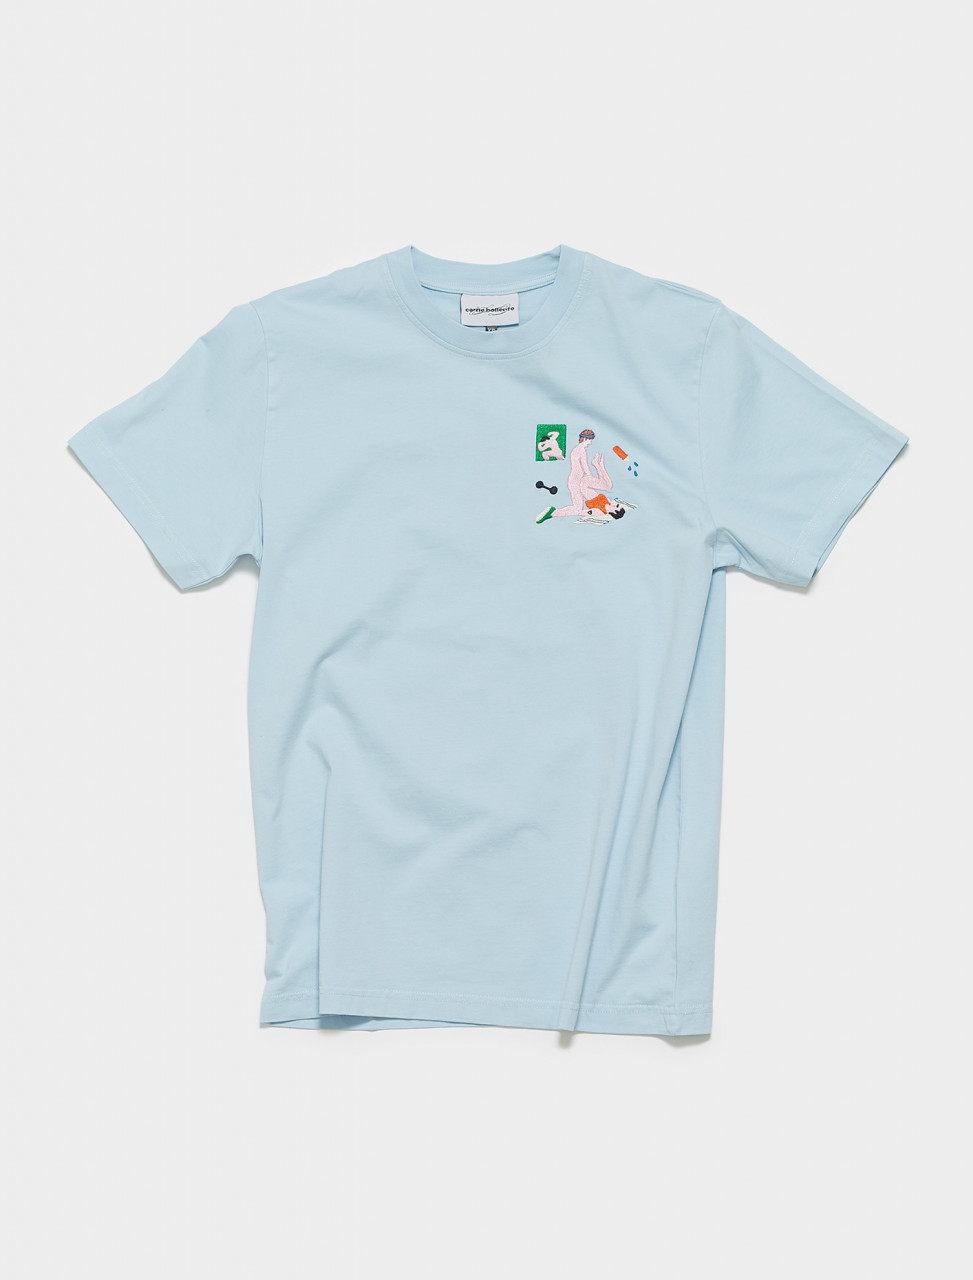 SS21TS01-WB CARNE BOLLENTE AERODICK T SHIRT IN WASHED BLUE